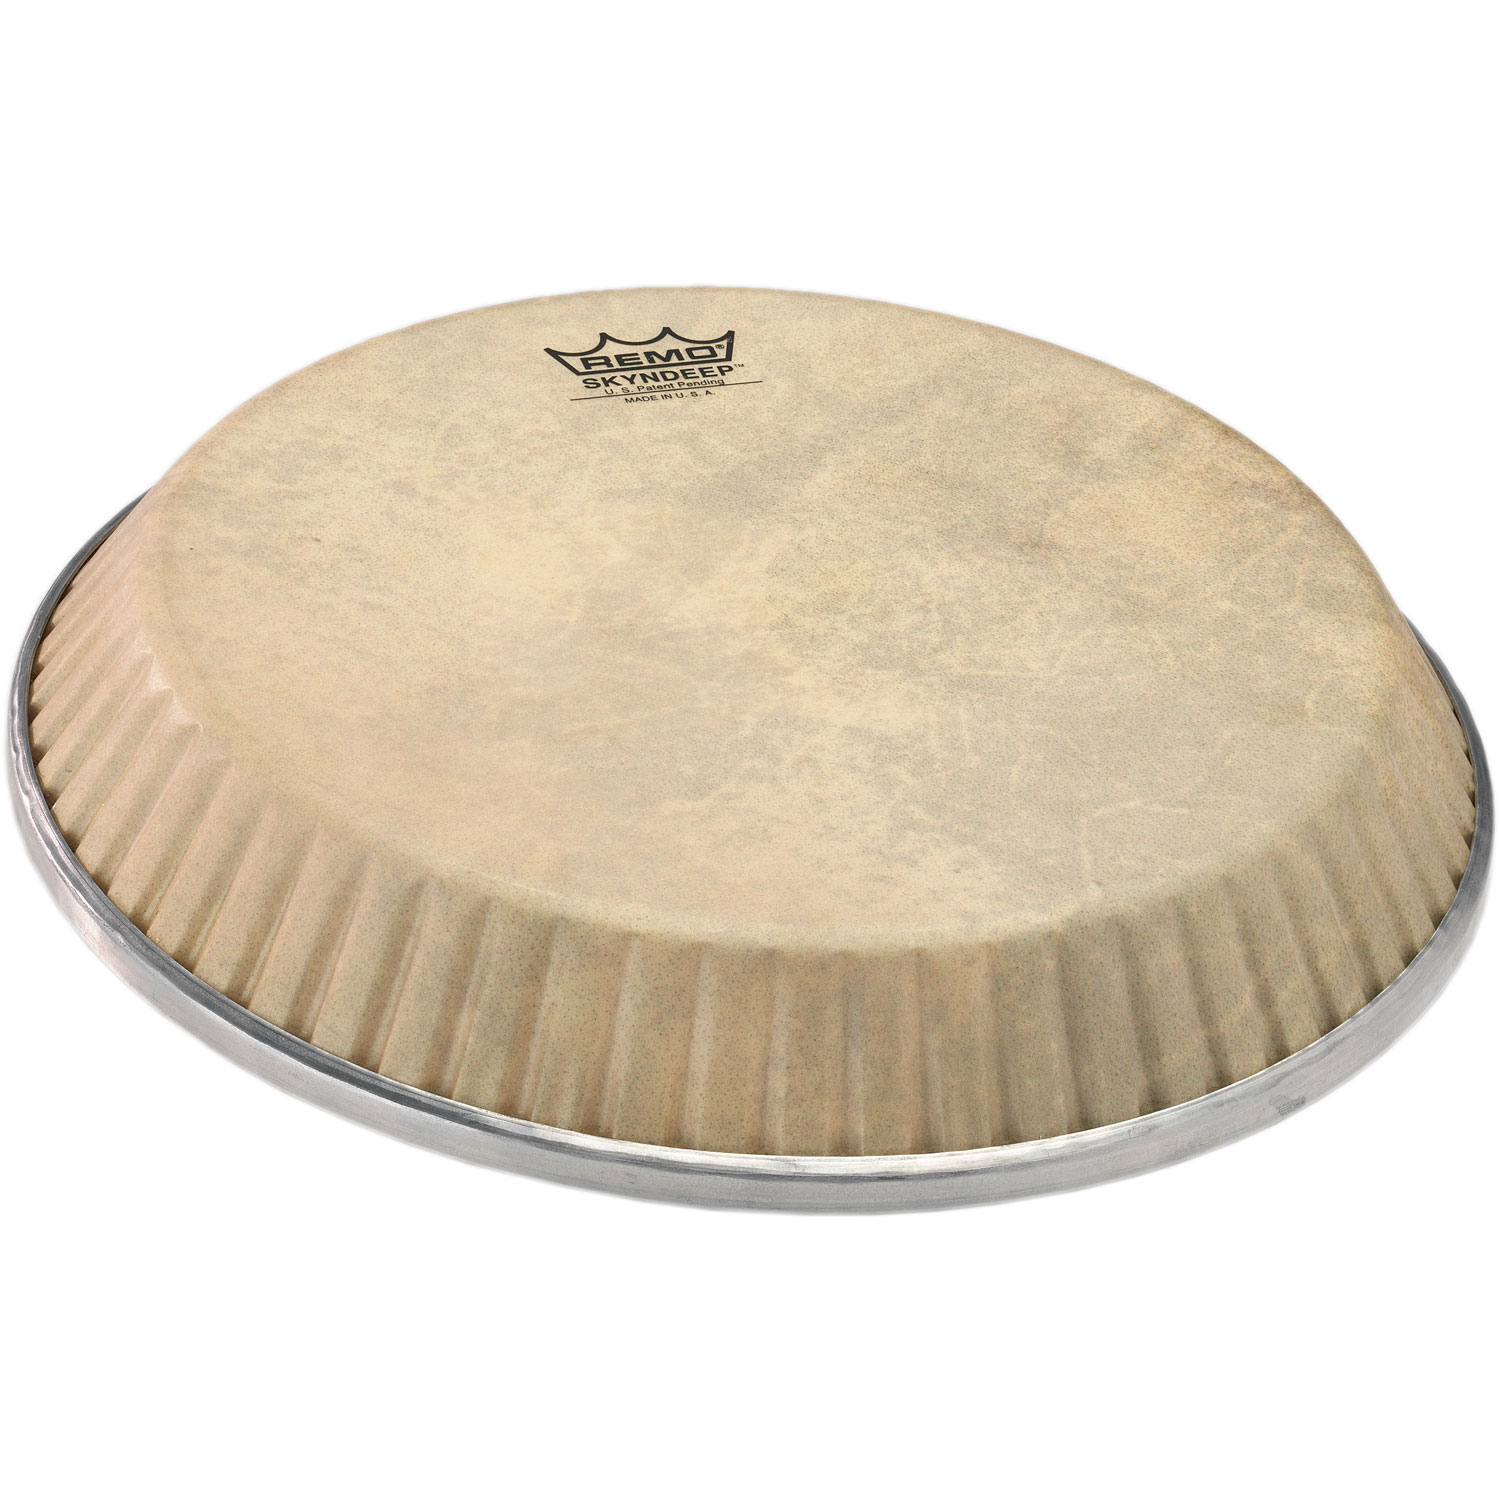 """Remo 12.25"""" Symmetry Skyndeep Conga Drum Head (D1 Collar) with Calfskin Graphic"""